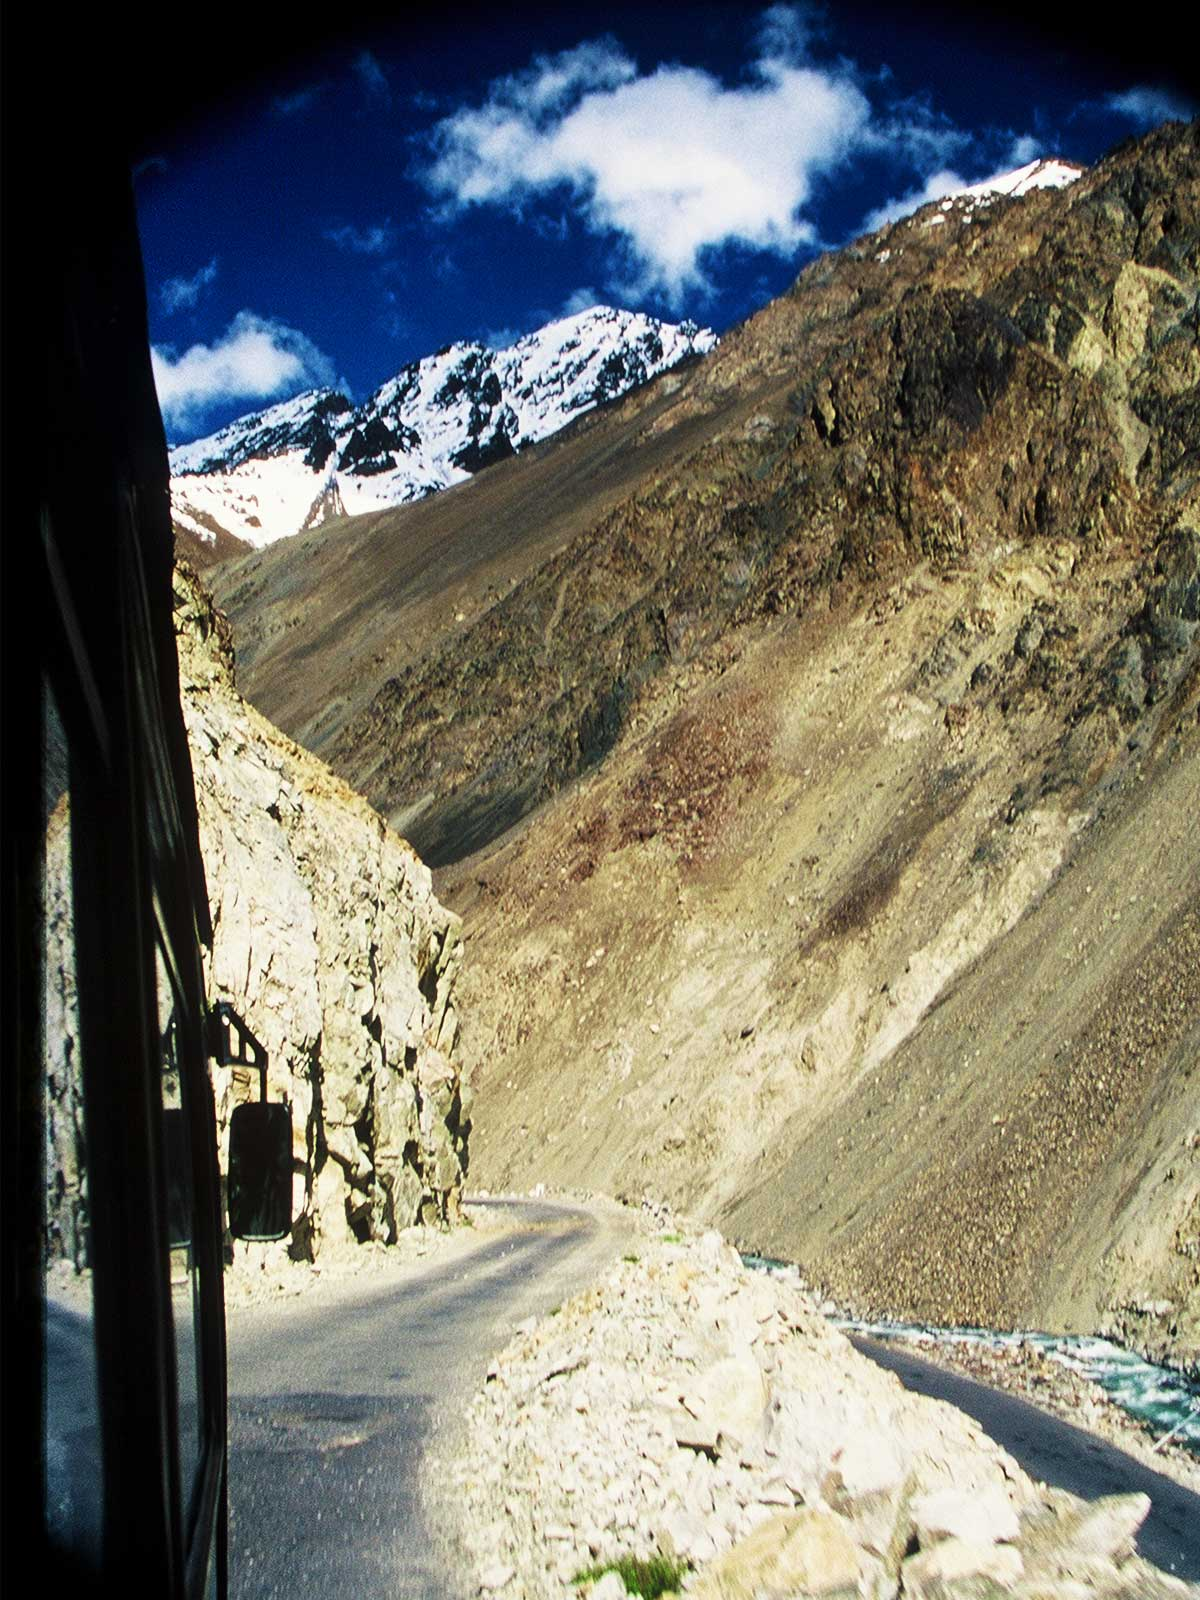 Karakoram Highway | Pakistan China Border Area | Public Bus | Steven A Martin | Education Abroad